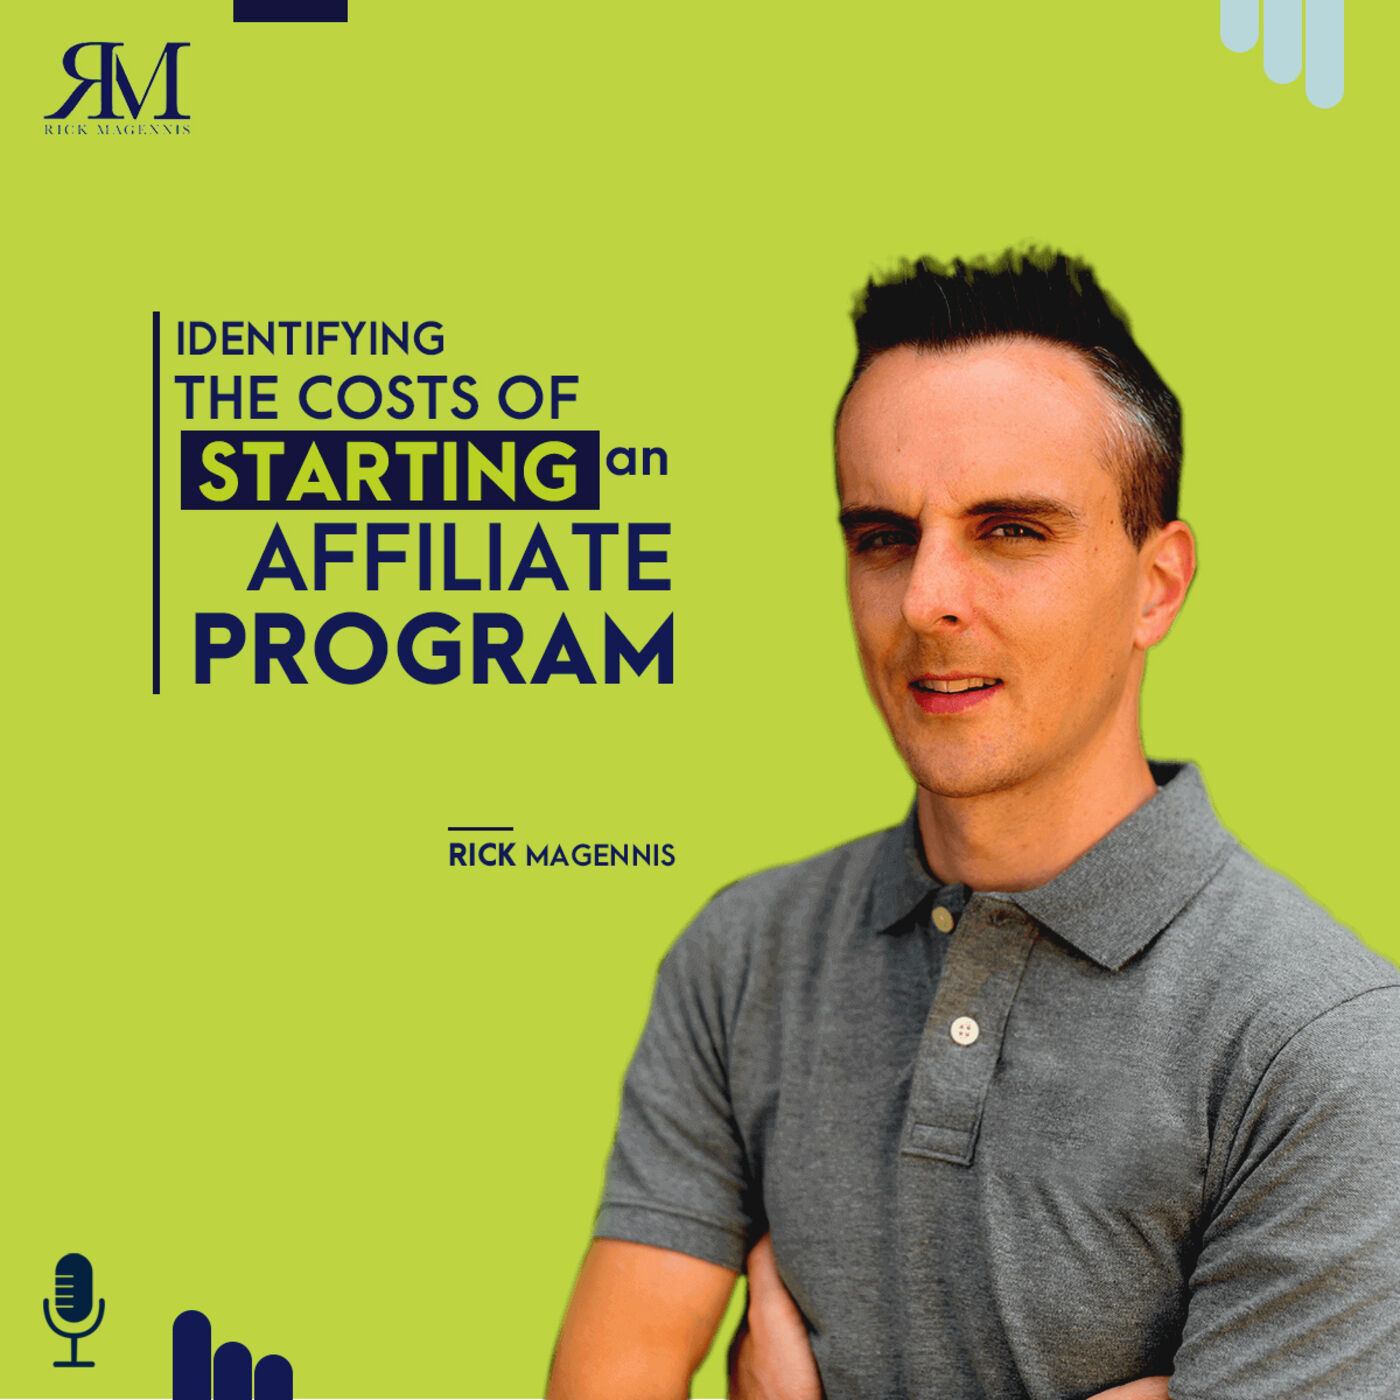 Identifying the Cost of Starting an Affiliate Program